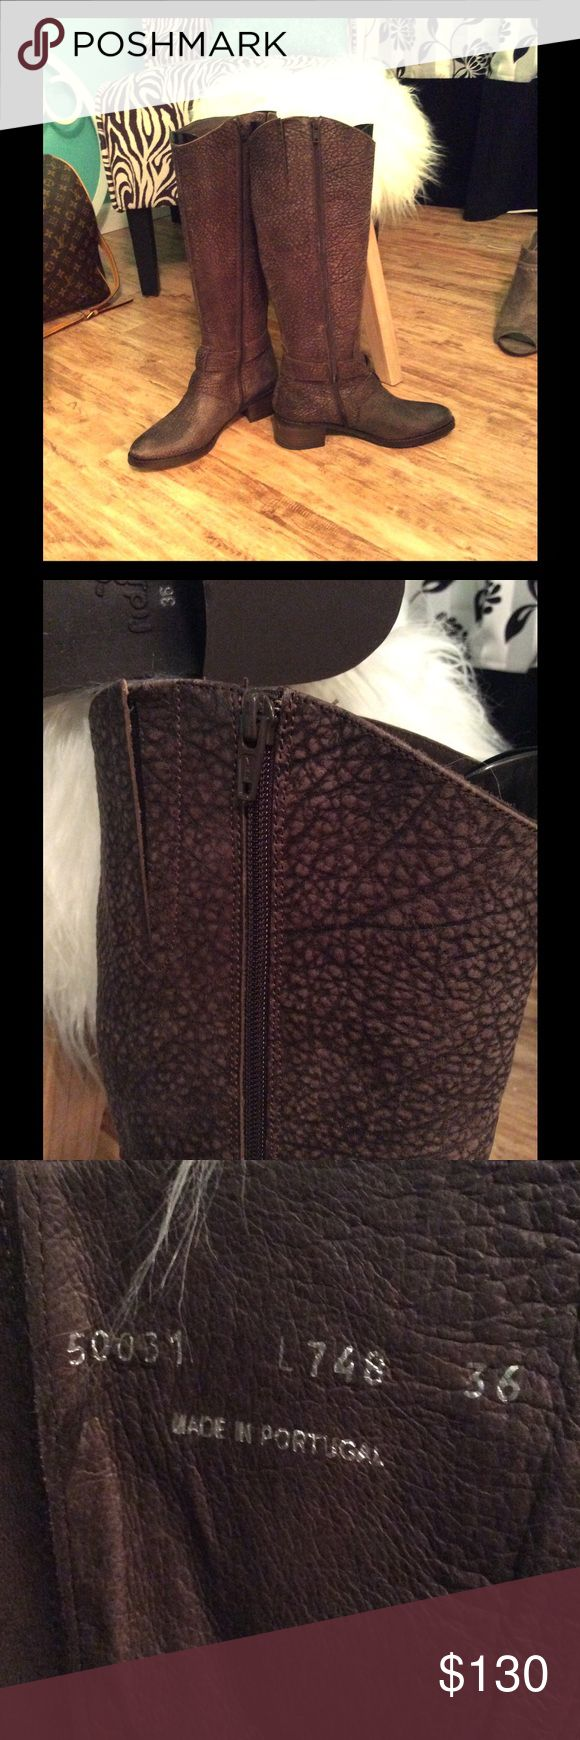 """NWT Fidji L748 Women's boots - Dark Brown These New amazing Fidji textured riding boots made in Portugal are a MUST have in your closet. Size 6 roughly 2"""" heel $130 Fast Shipping NO Trades Fidji Shoes Heeled Boots"""